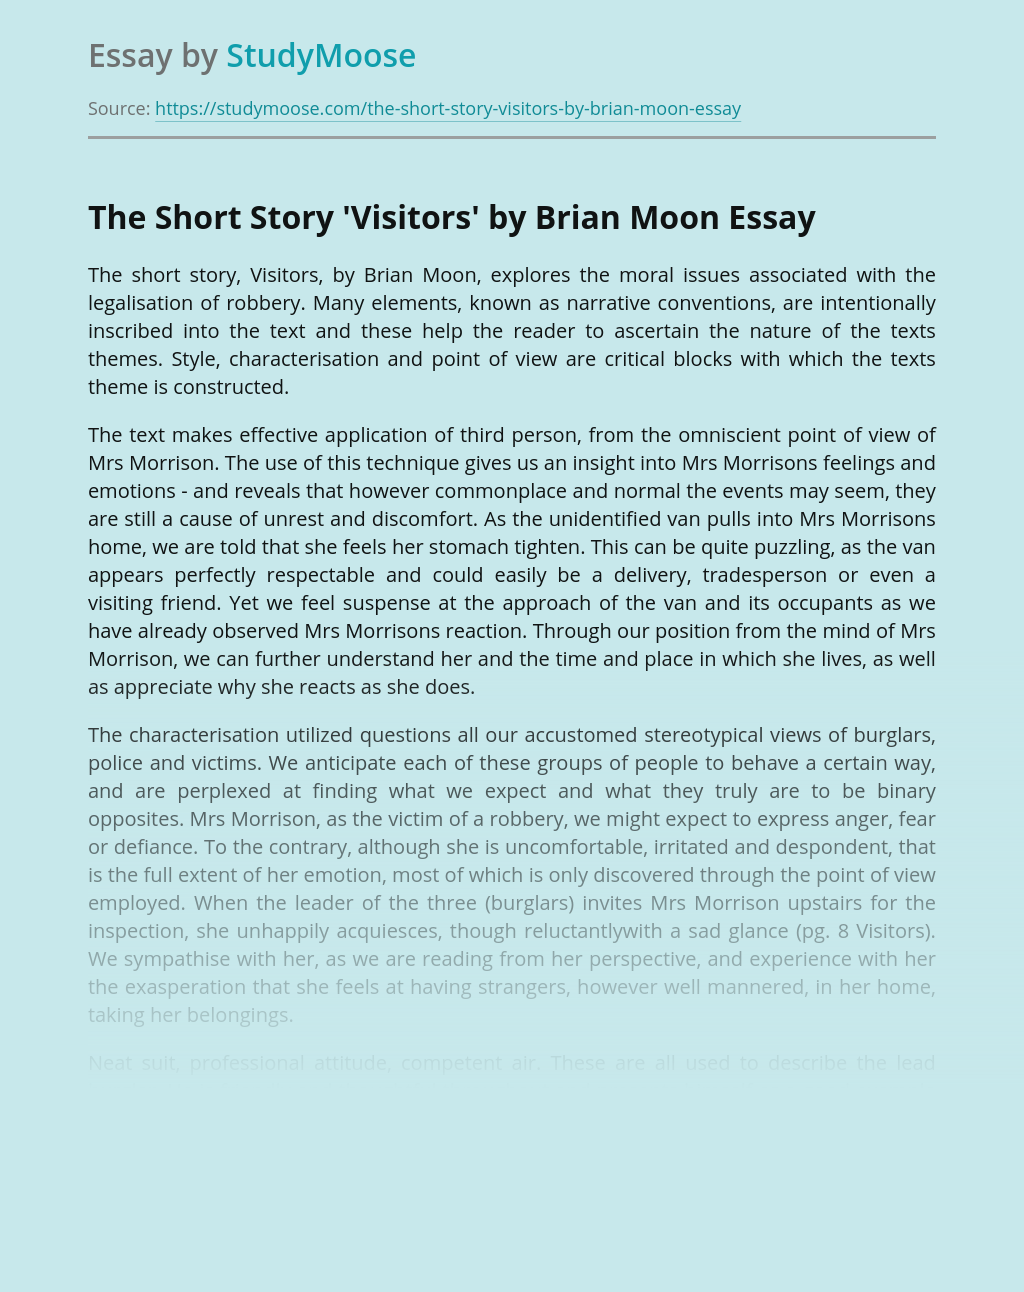 The Short Story 'Visitors' by Brian Moon